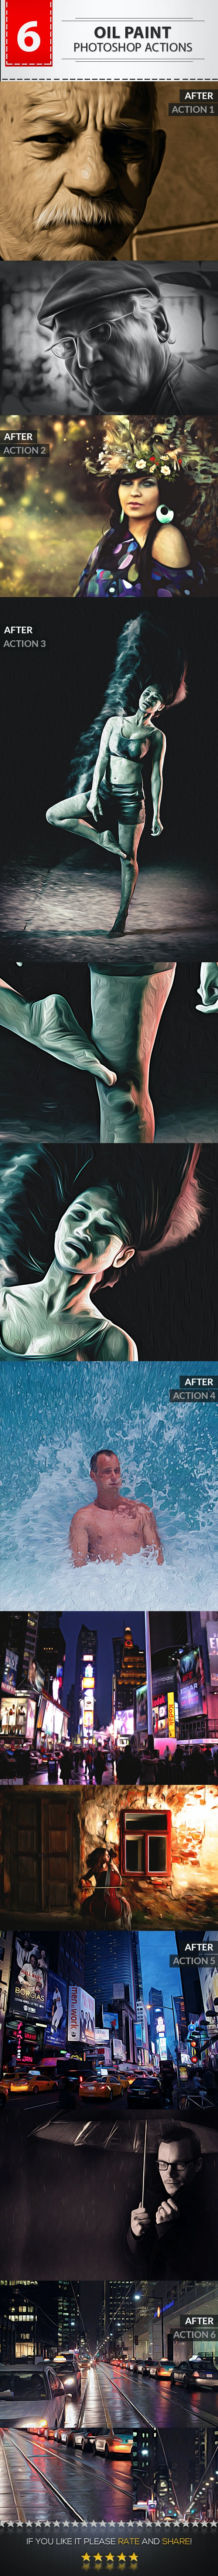 Oil Painting Photo Actions - Photo Effects Actions